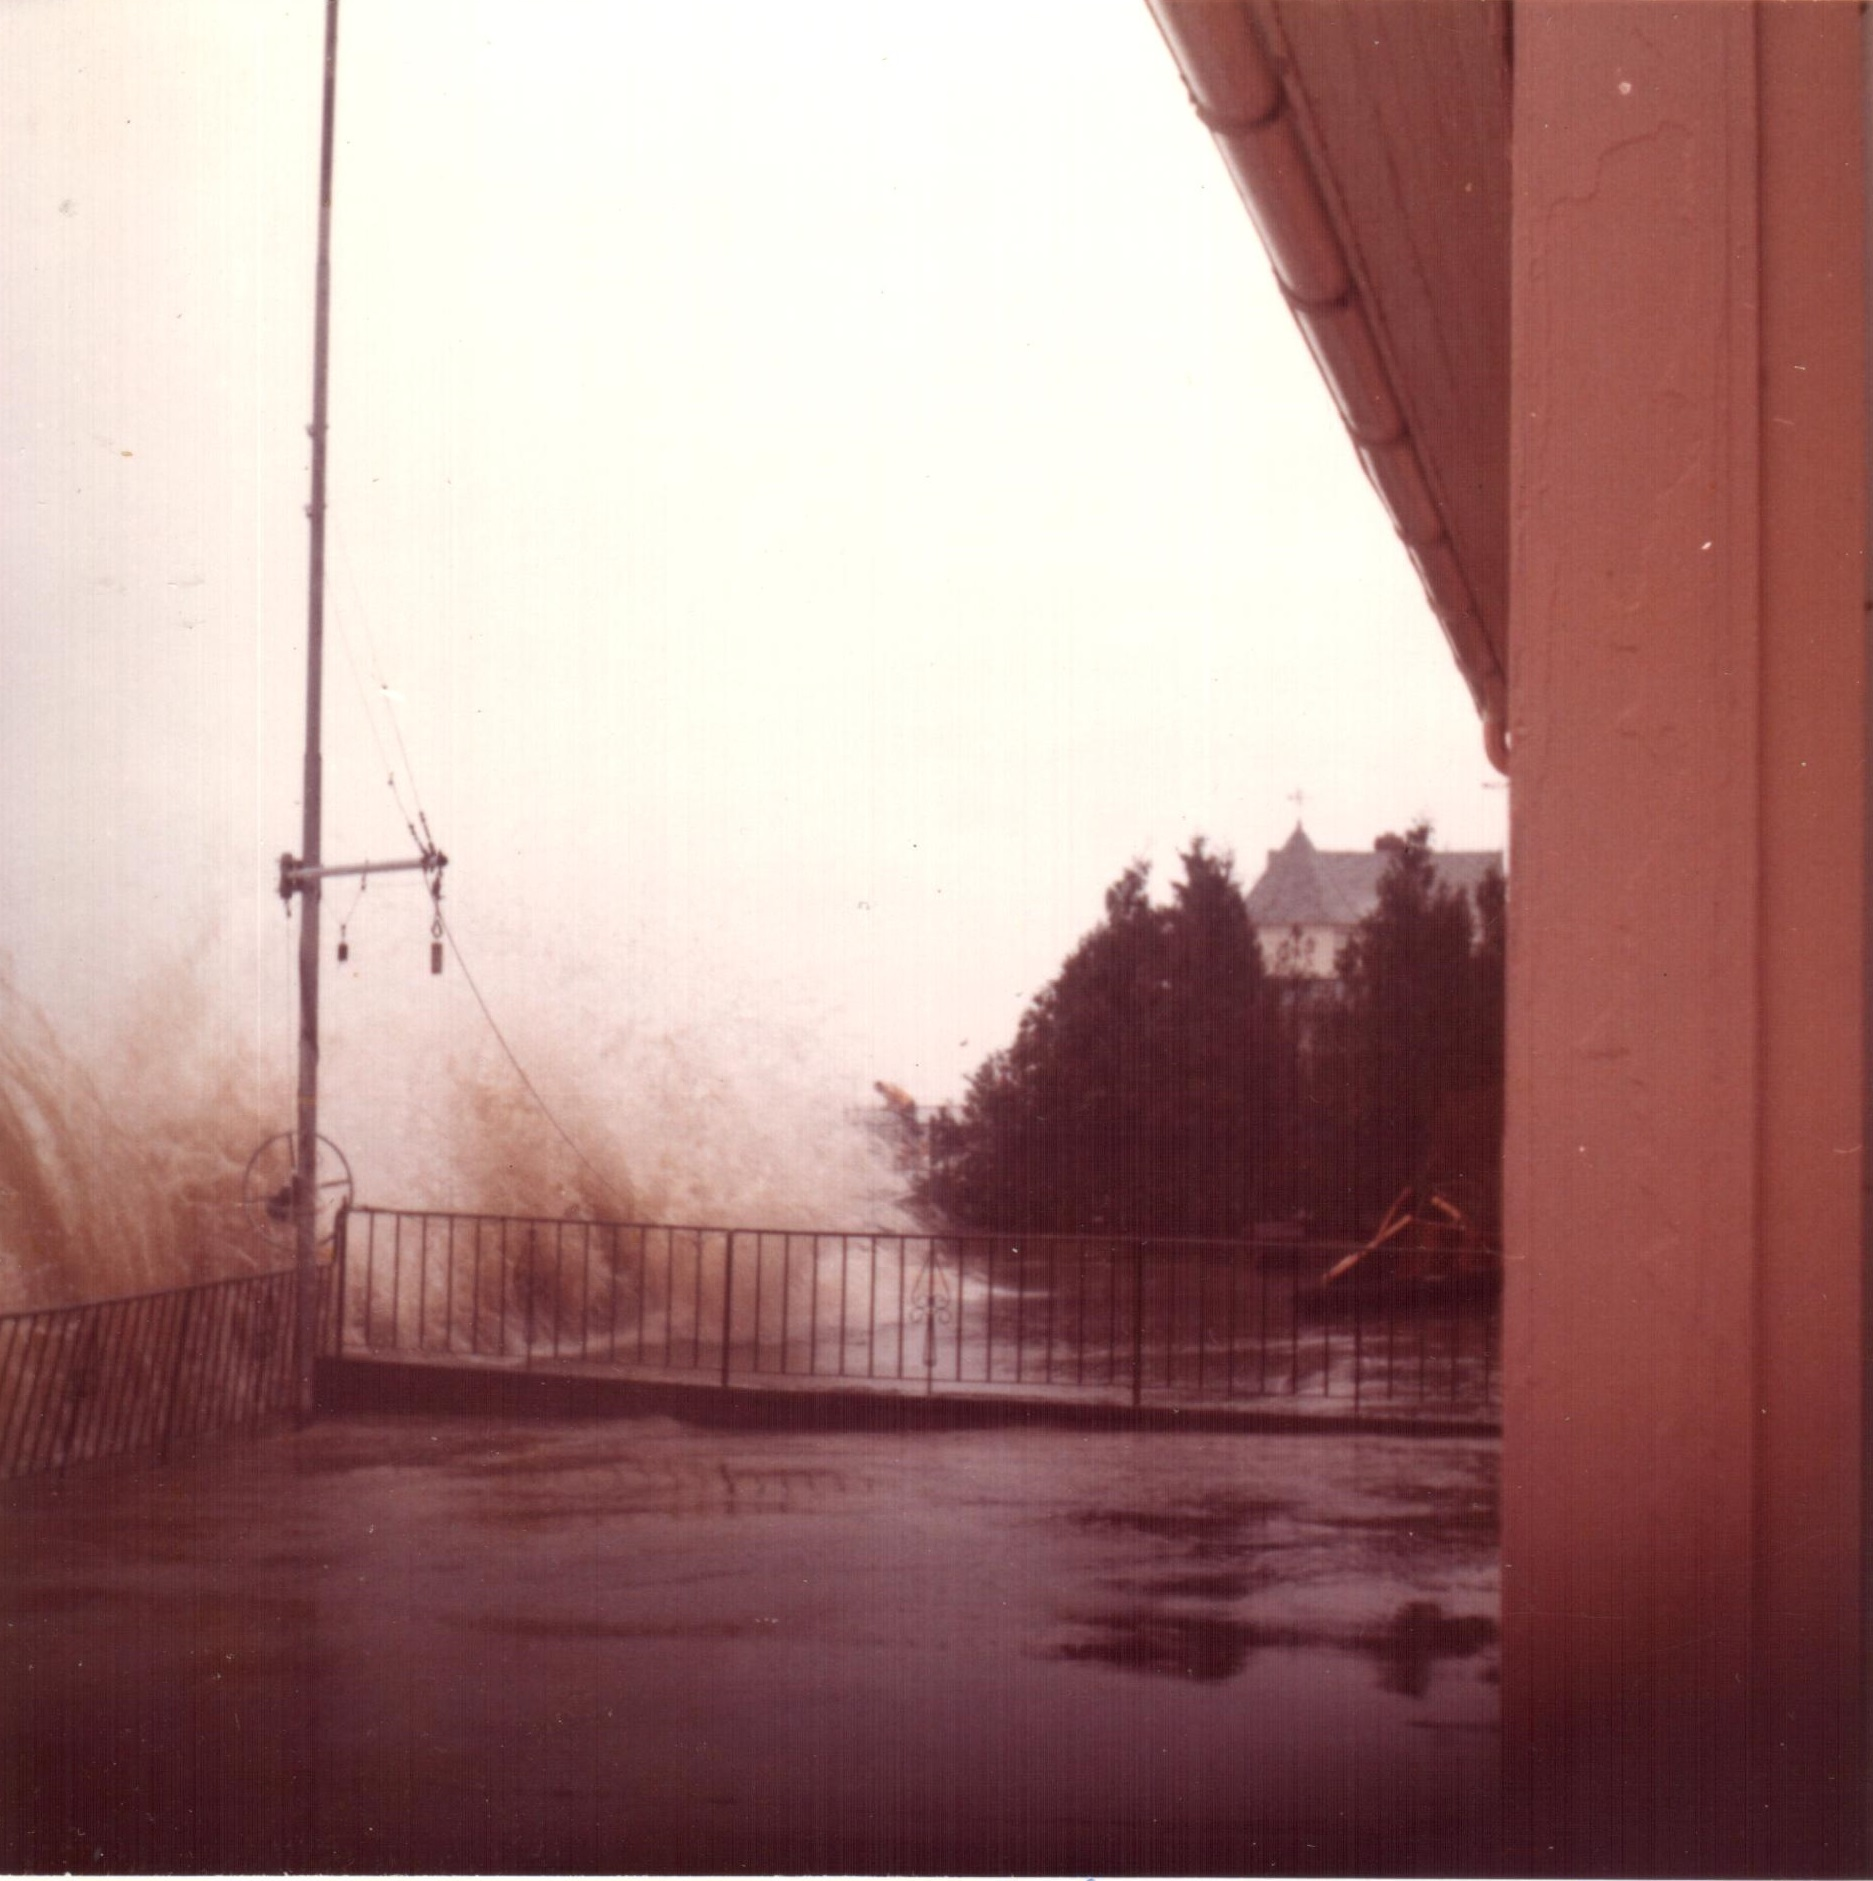 Caption: In 1973 waves crashed over Zieres' family's breakwall and flooded their home., Credit: Provided